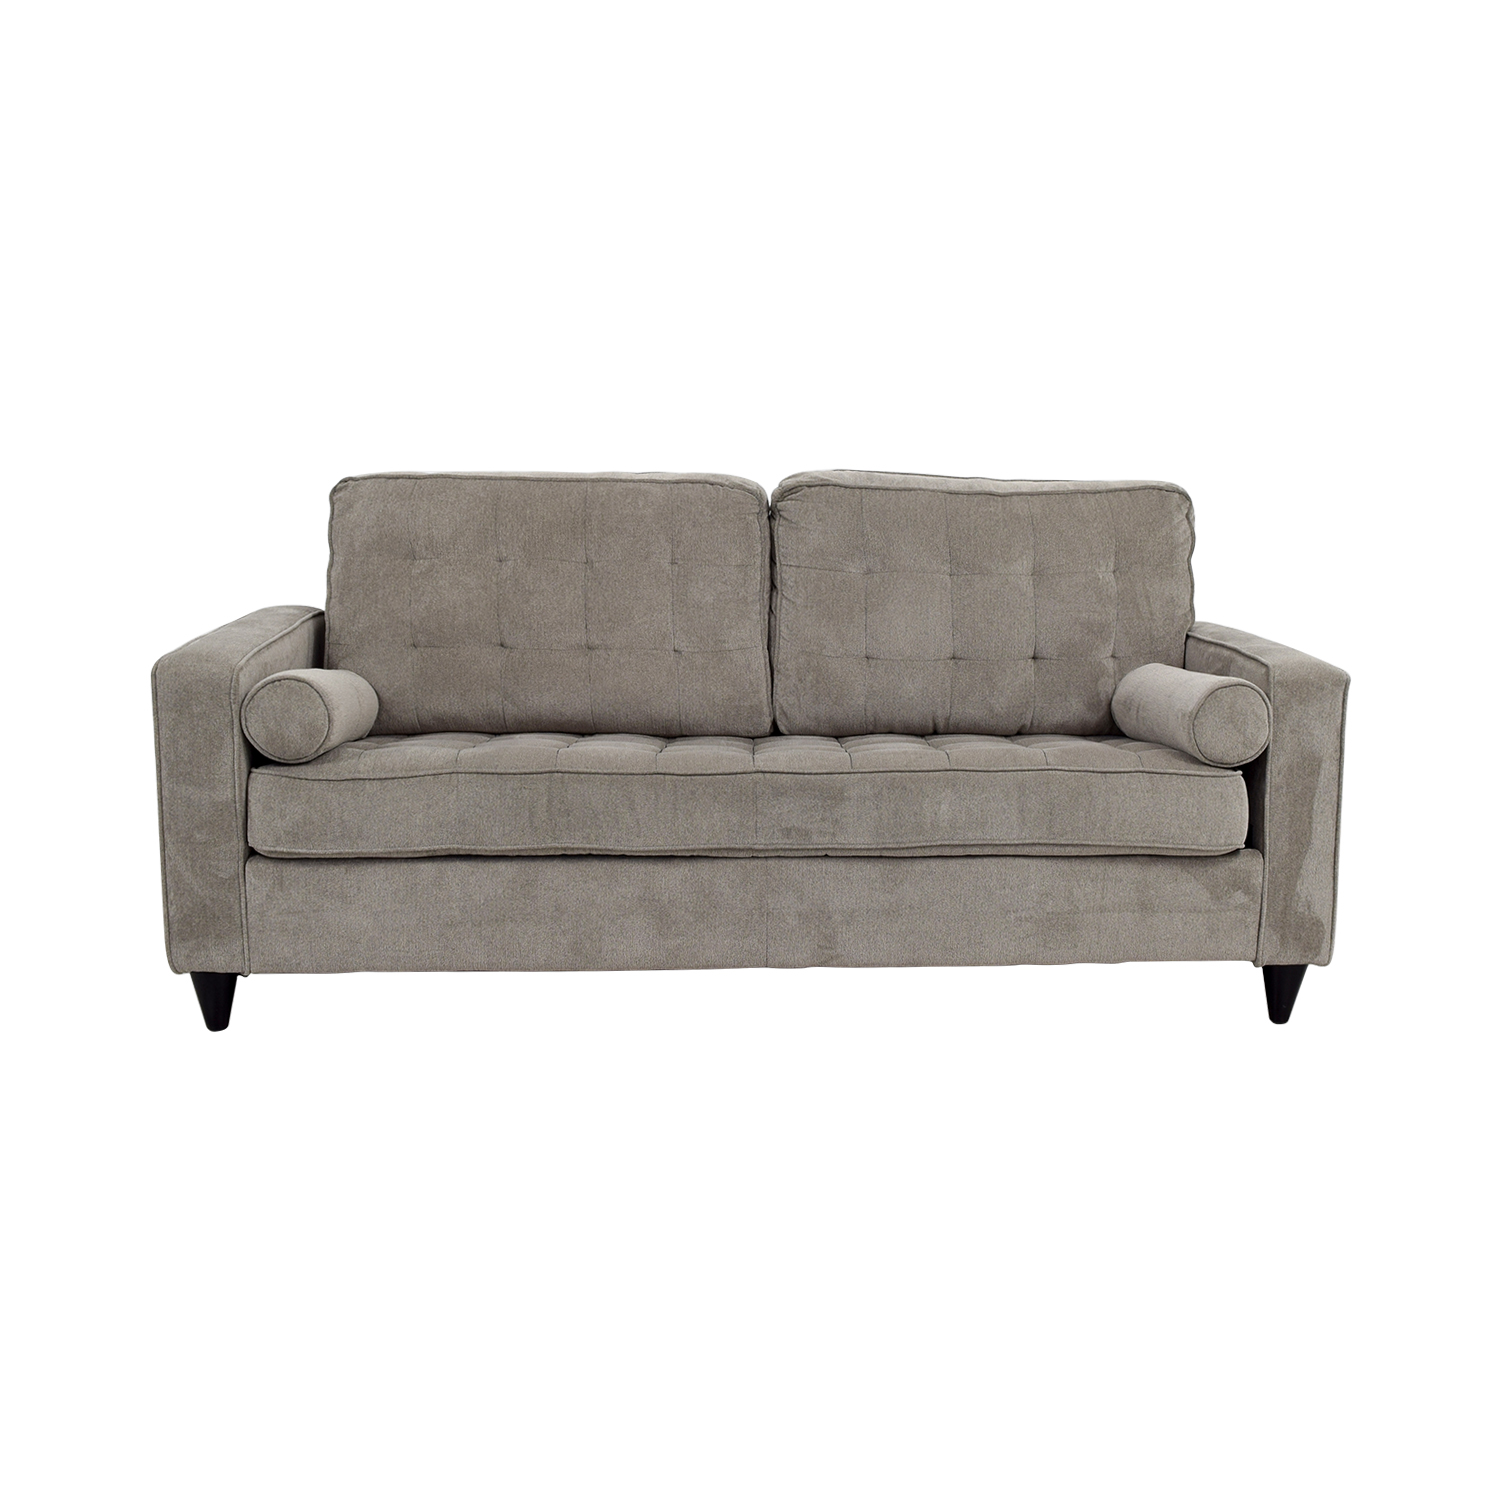 Corrigan Studio Corrigan Studio Christiana Gray Tufted Sofa for sale